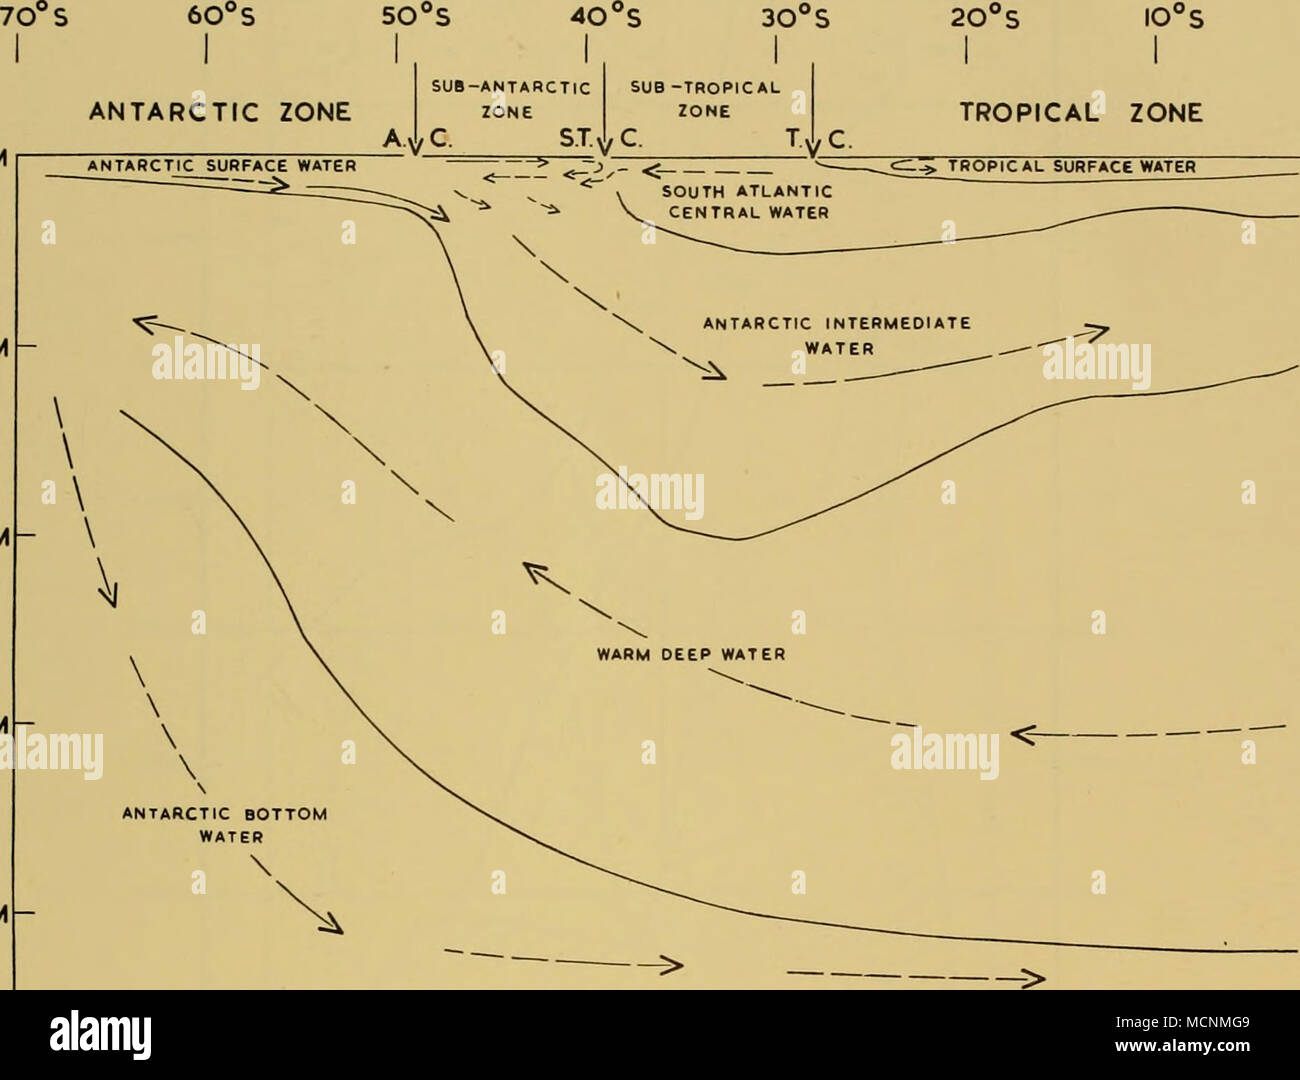 antarctic bottom water text-fig  14  diagram indicating the circulation  of water approximately along the meridian of 30° w  the arrows indicate the